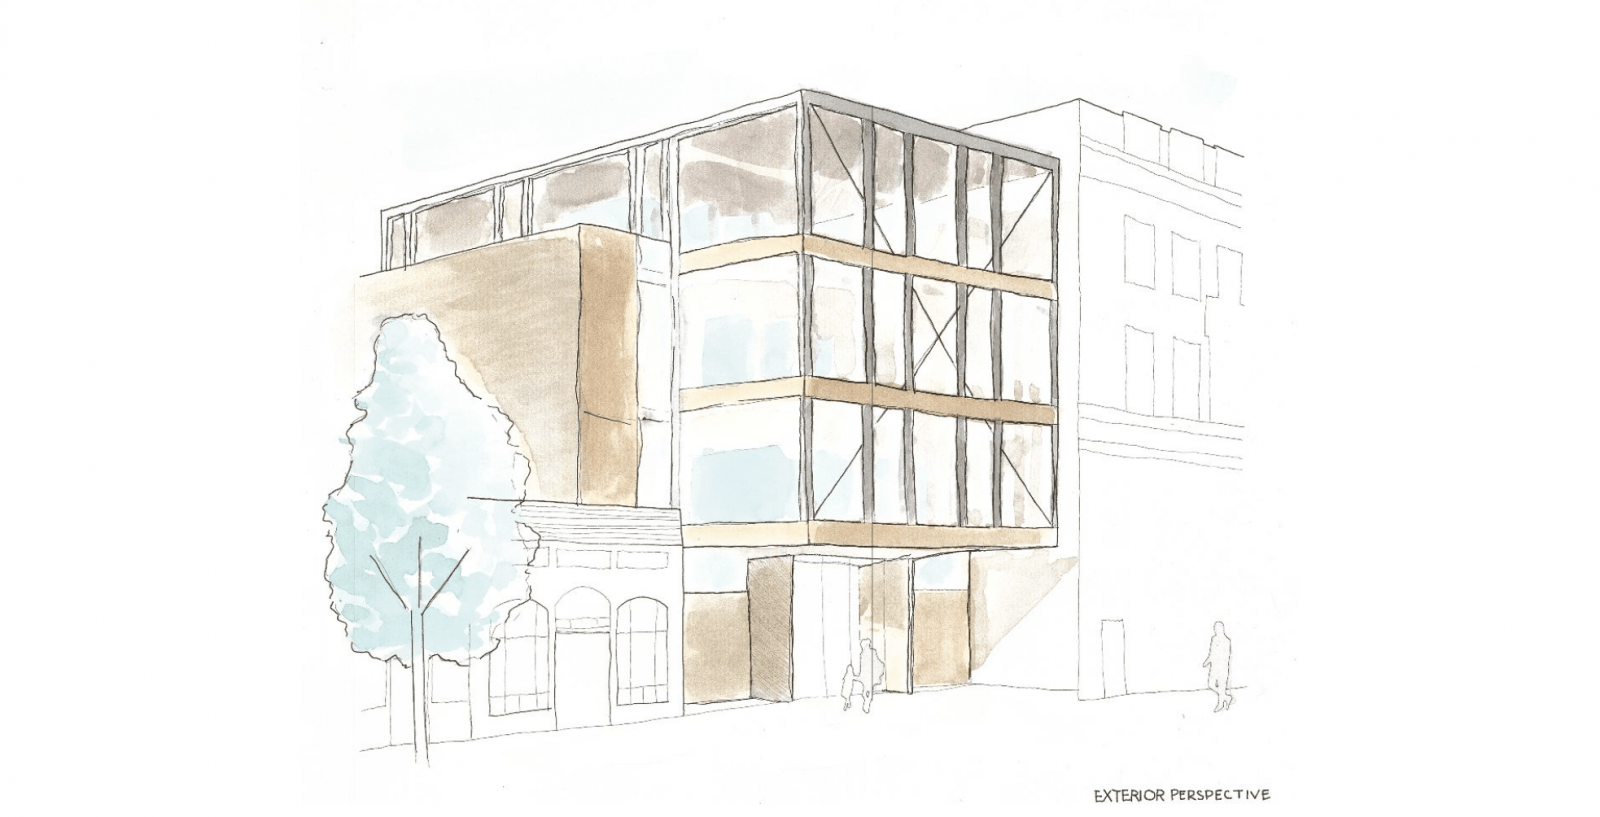 Baltimore AIA 2020 Awards rendering of building